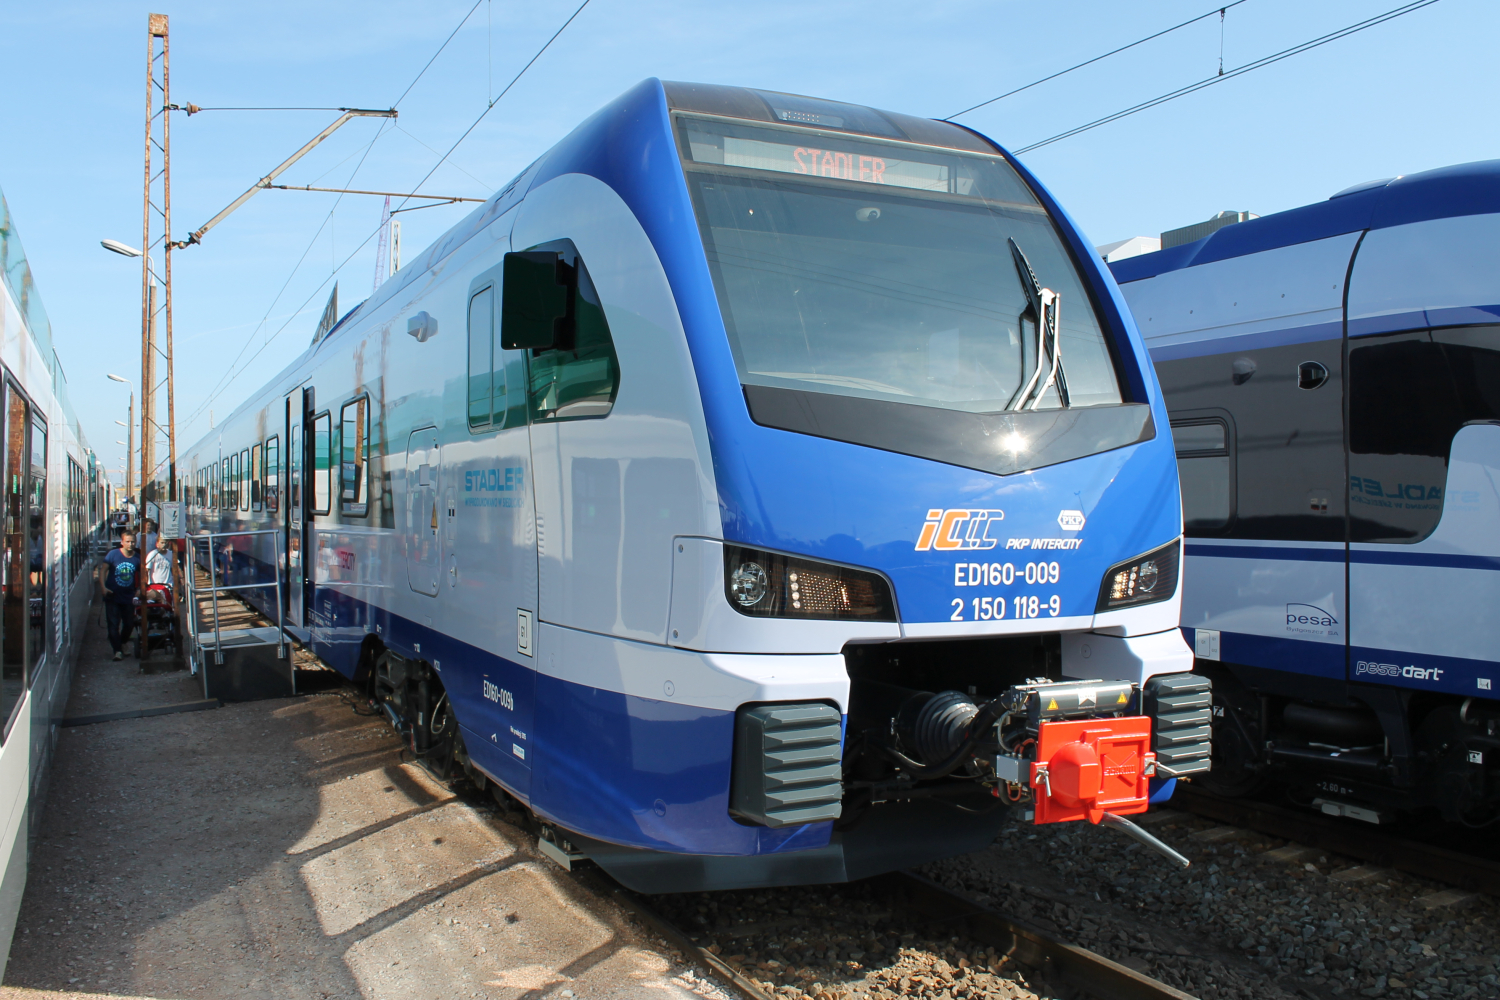 Stadler FLIRT 3 for PKP Intercity in Poland